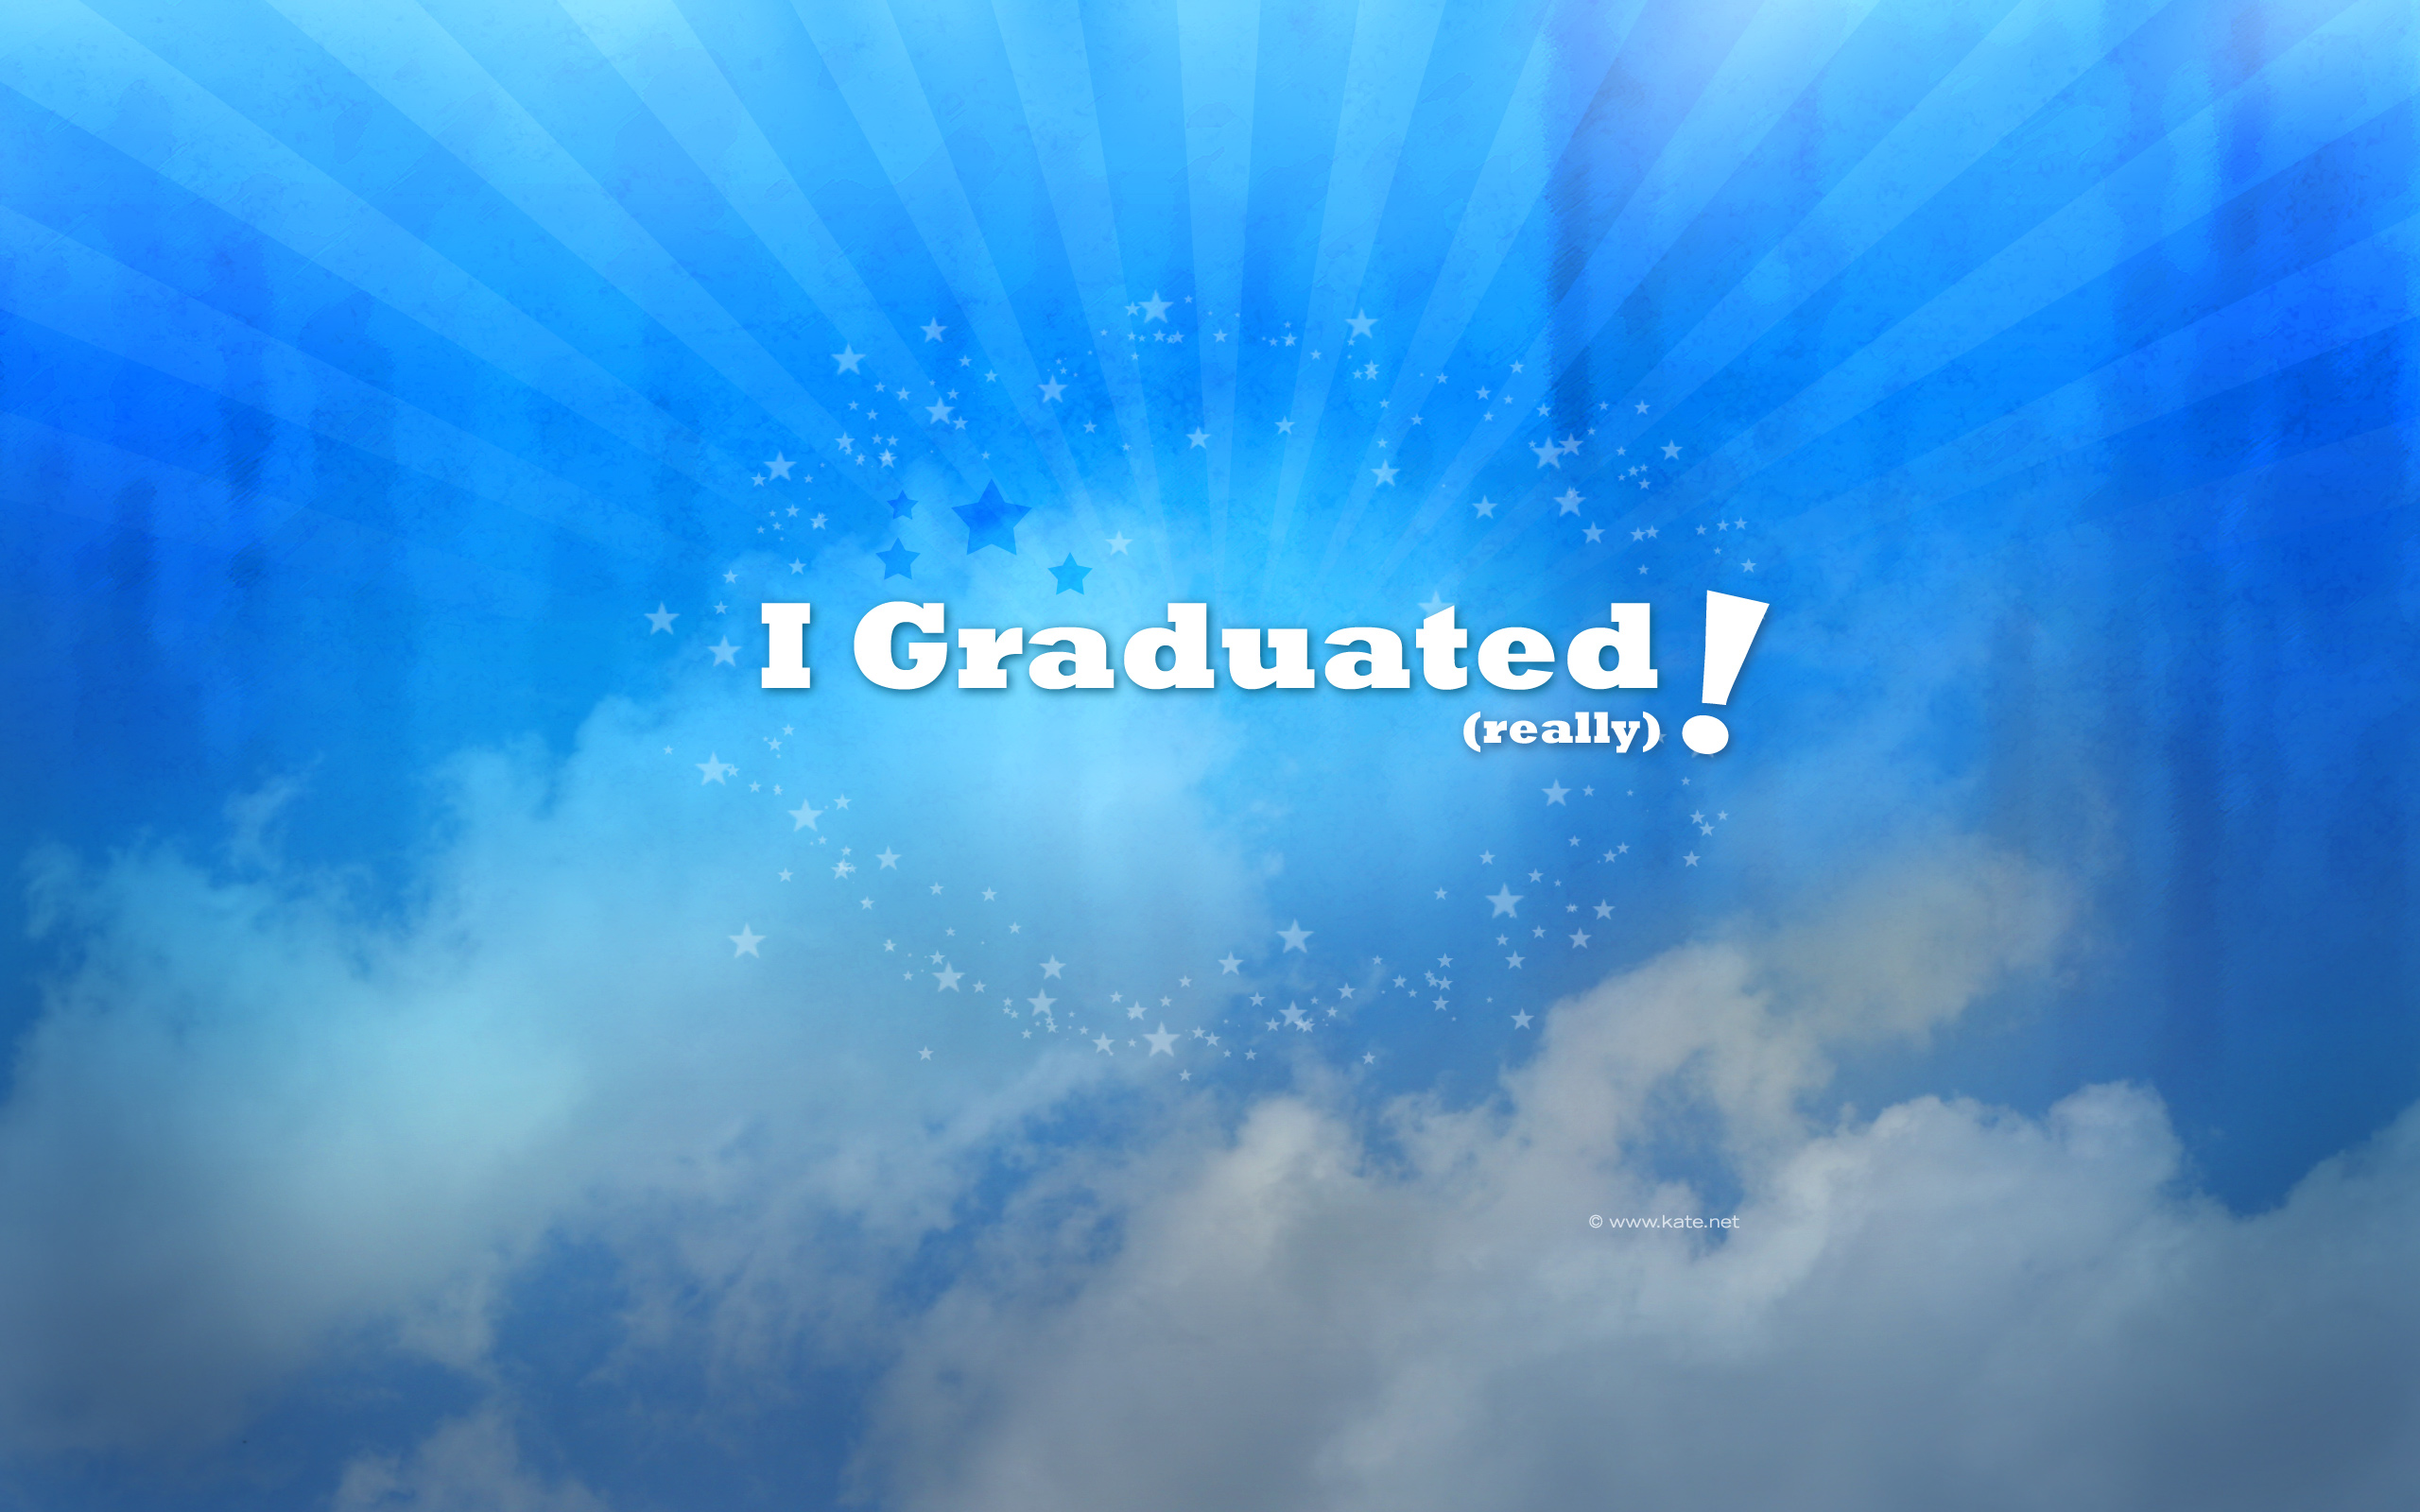 Graduation Wallpaper